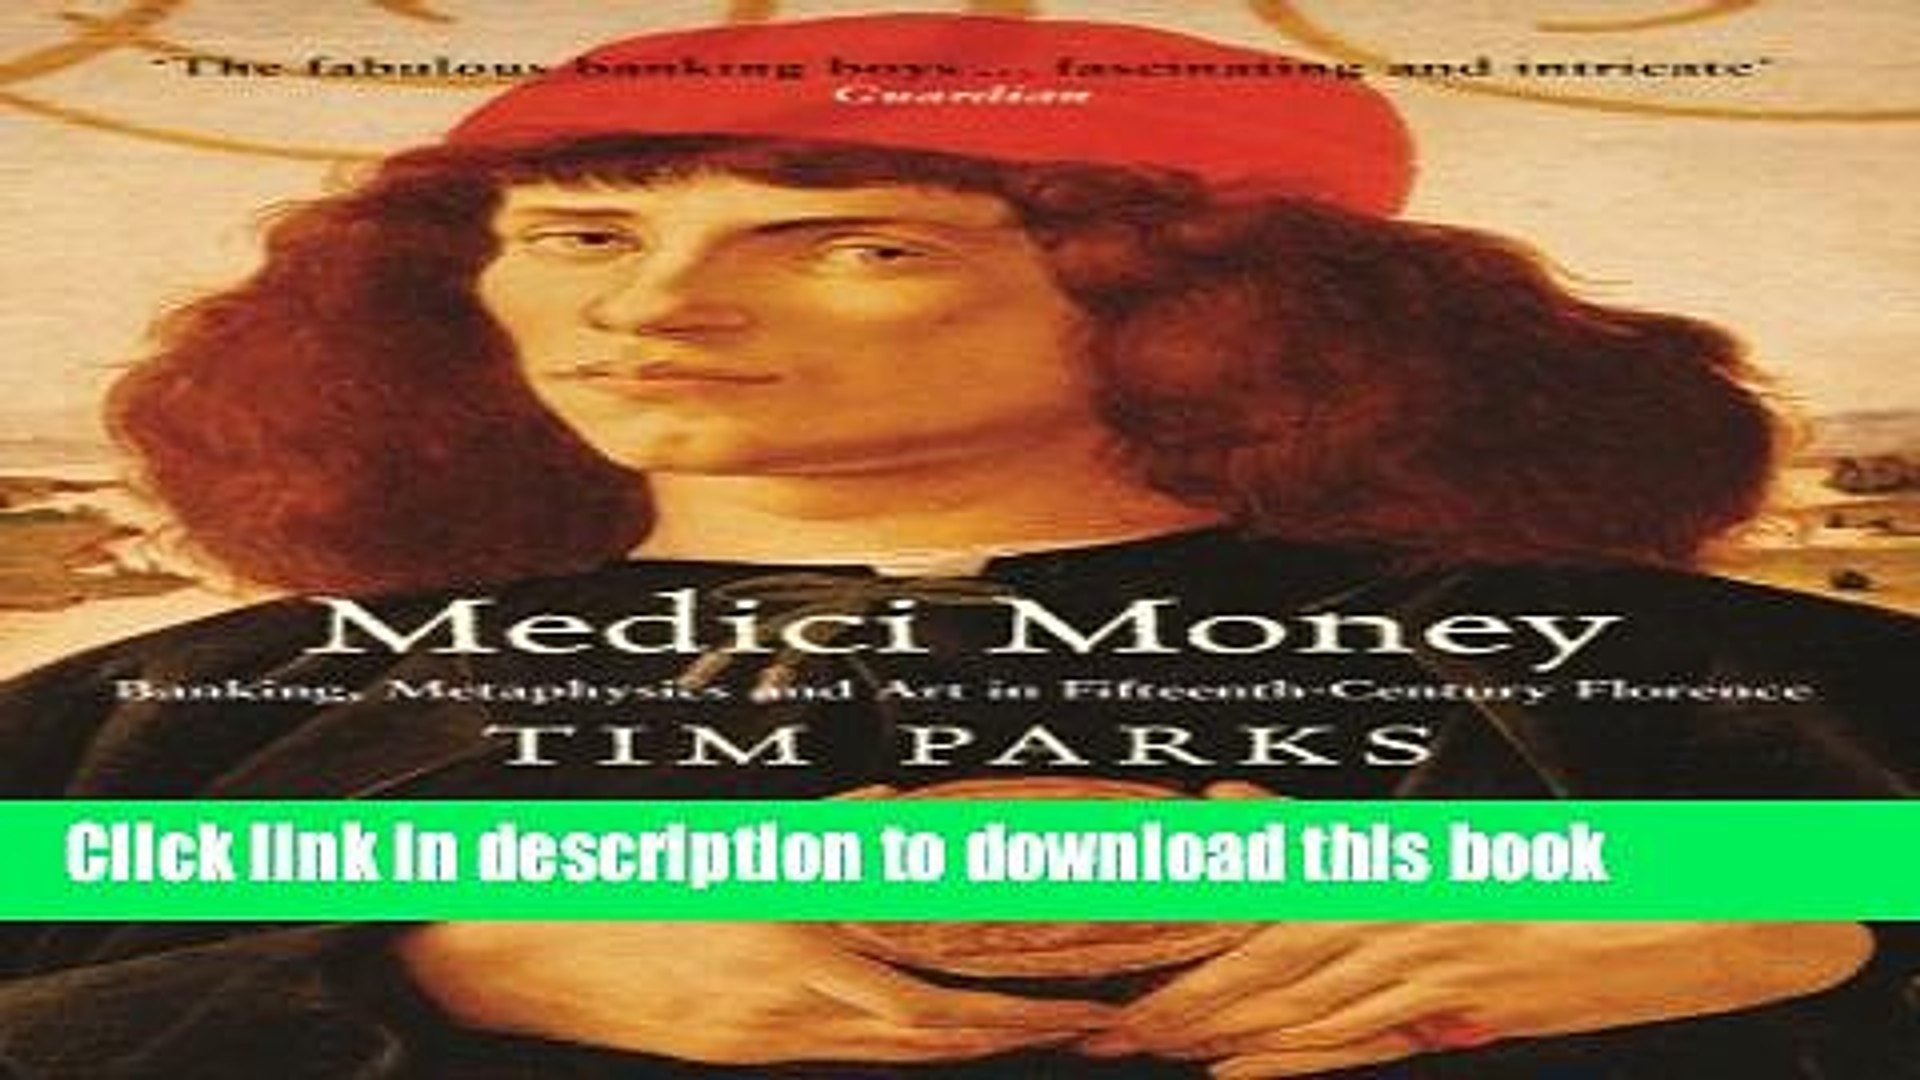 Read Medici Money: Banking, metaphysics and art in fifteenth-century Florence  PDF Online